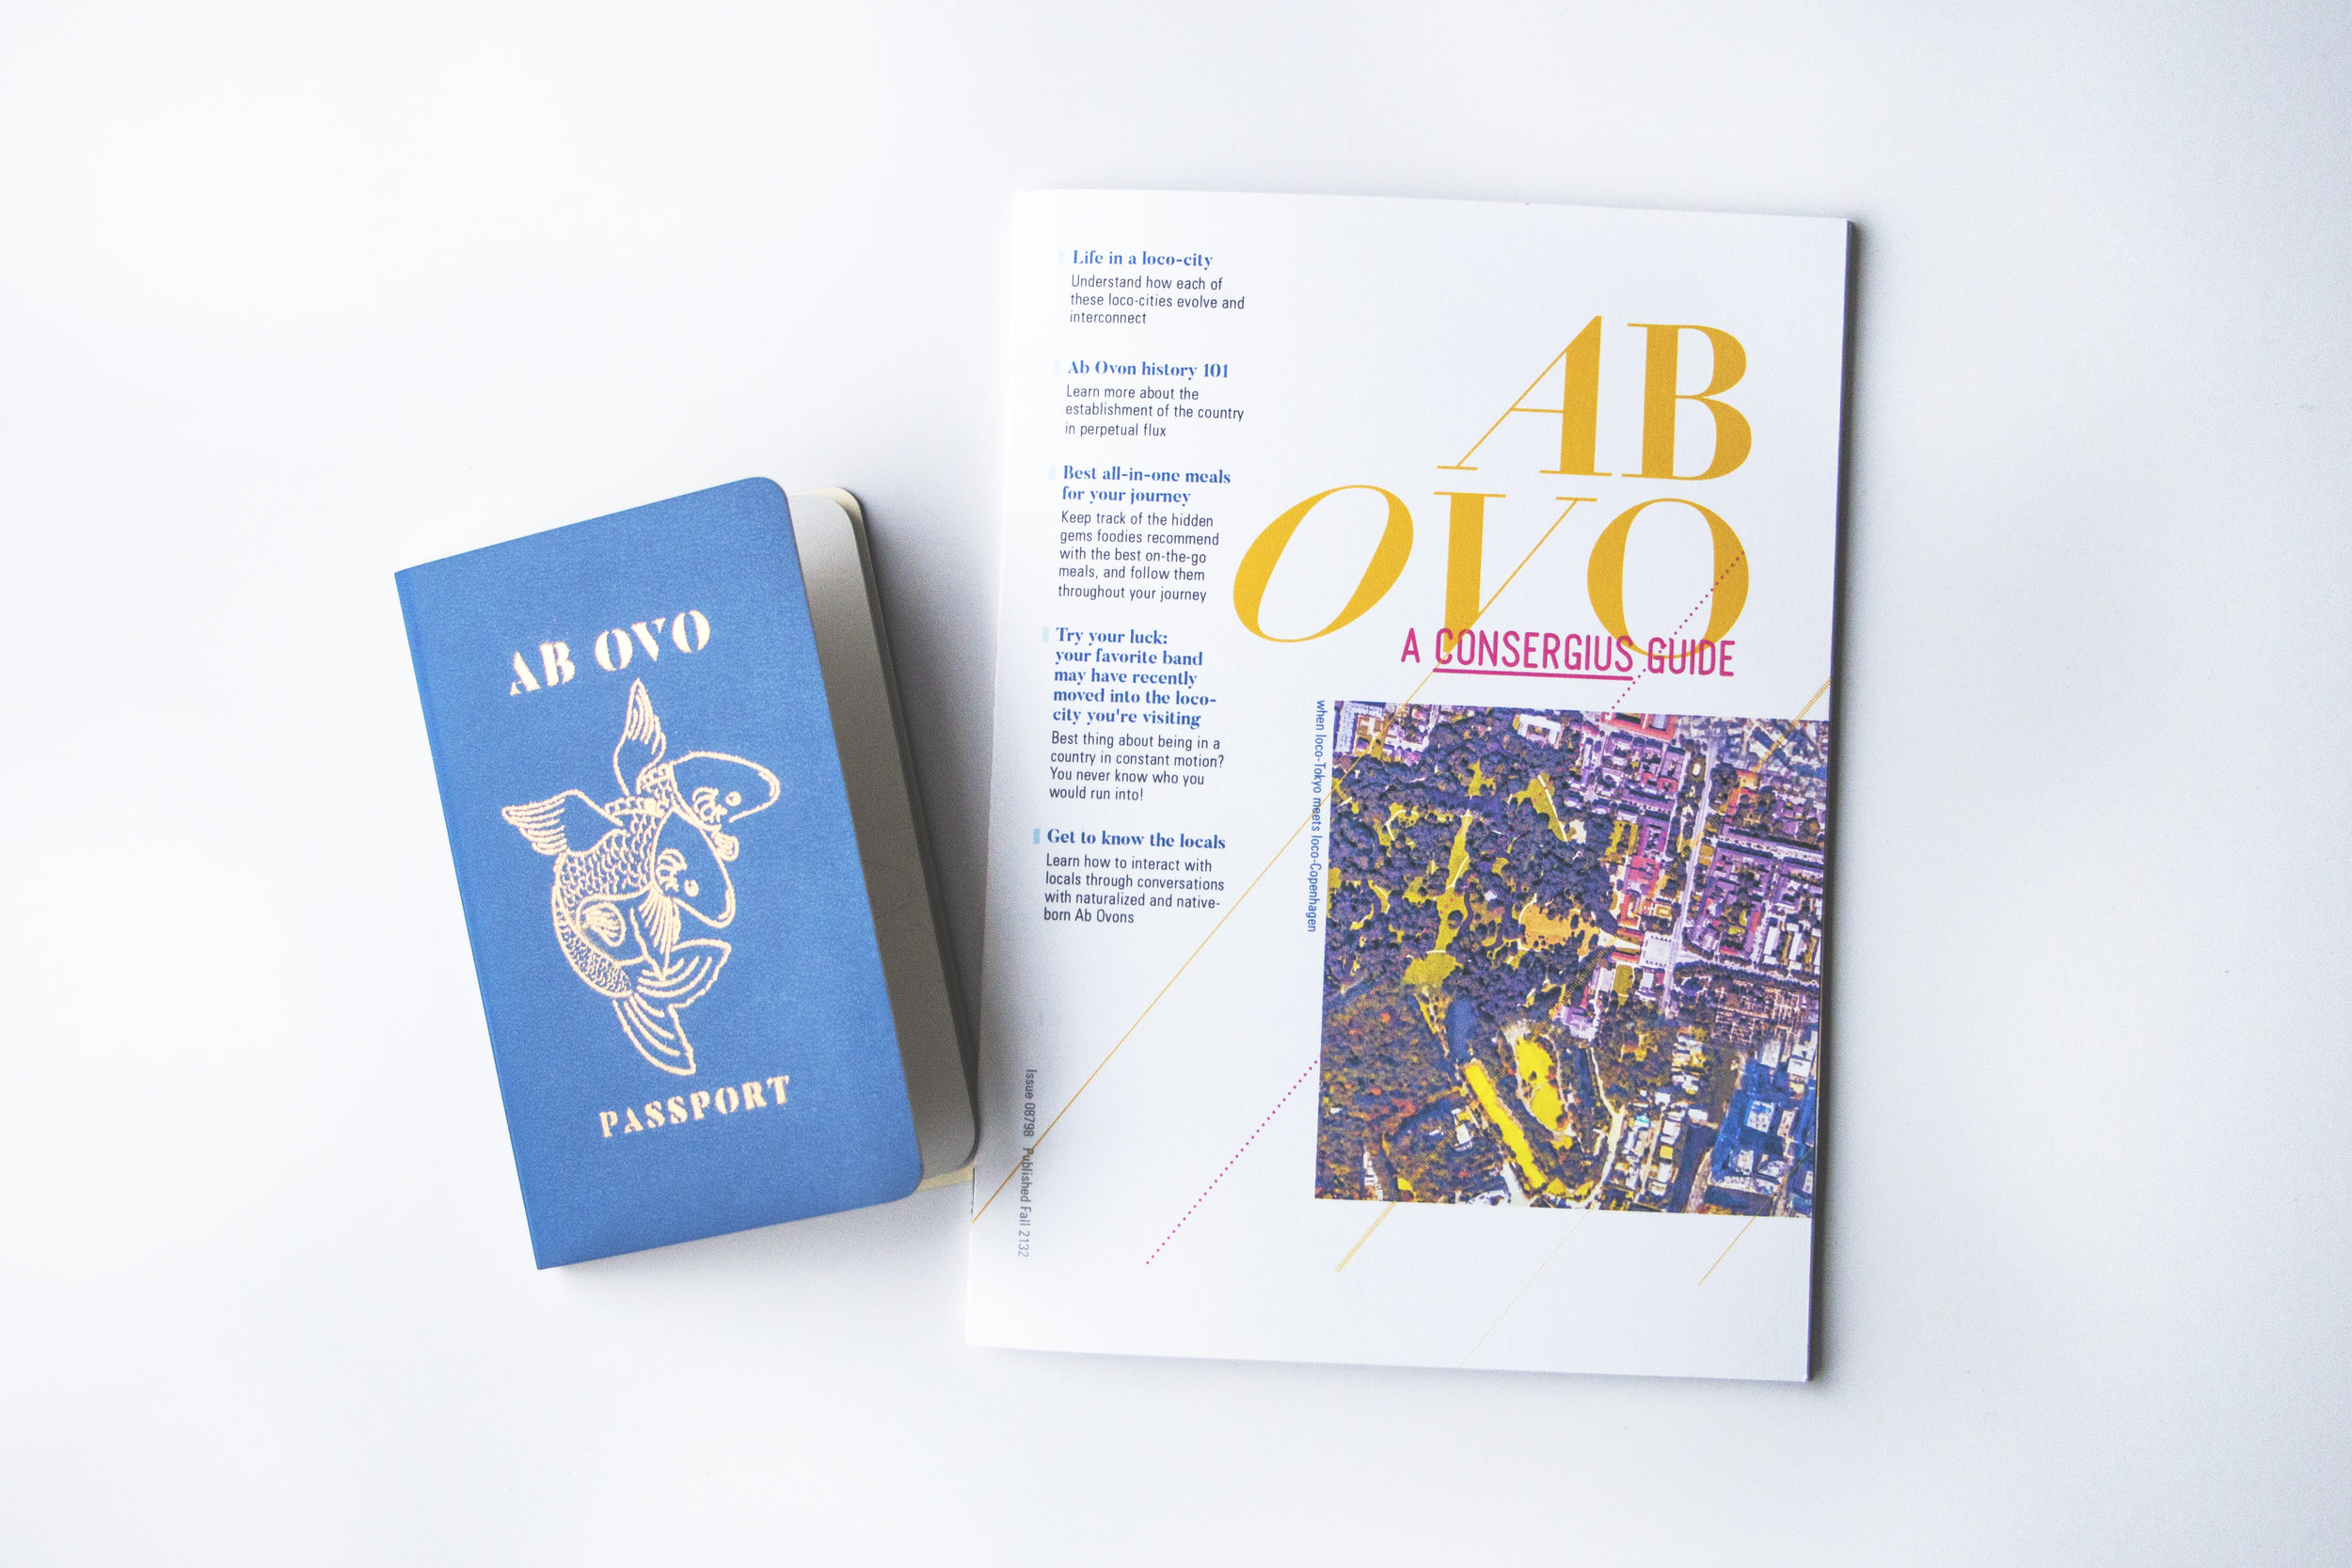 Passport of Ab Ovo, a country of the future; Travel guide for tourists who want to visit Ab Ovo.